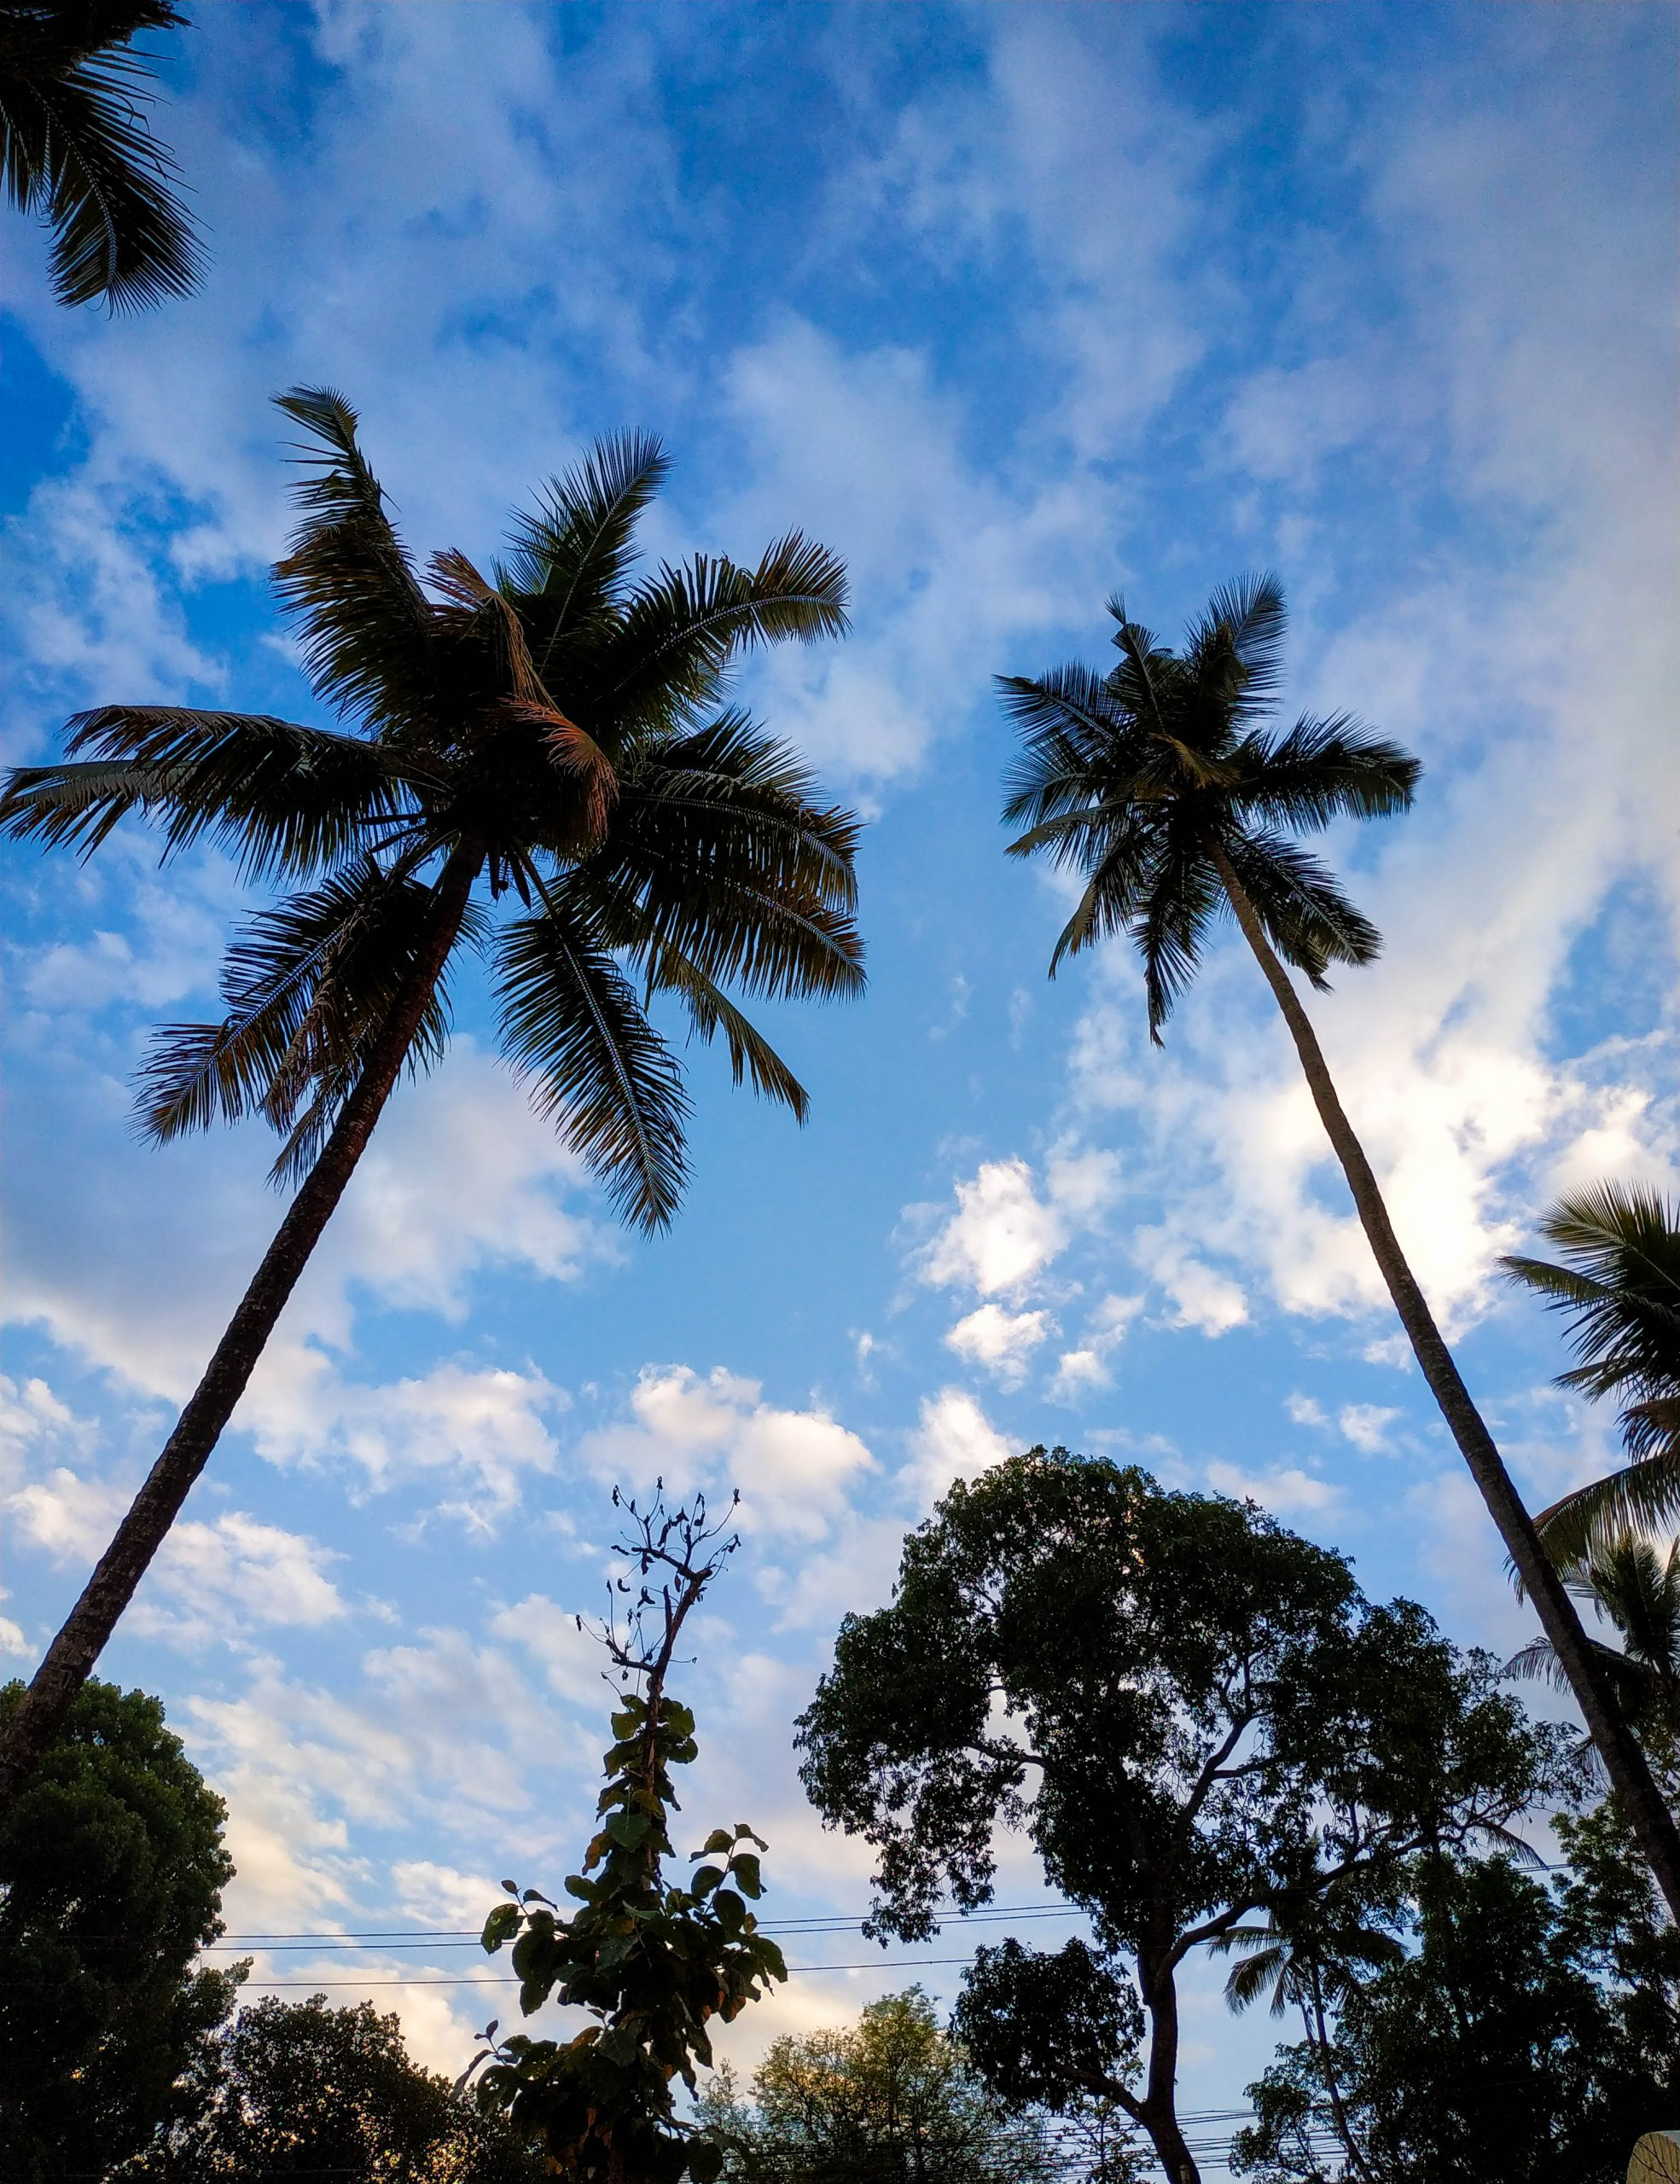 Palm Trees with Sky View